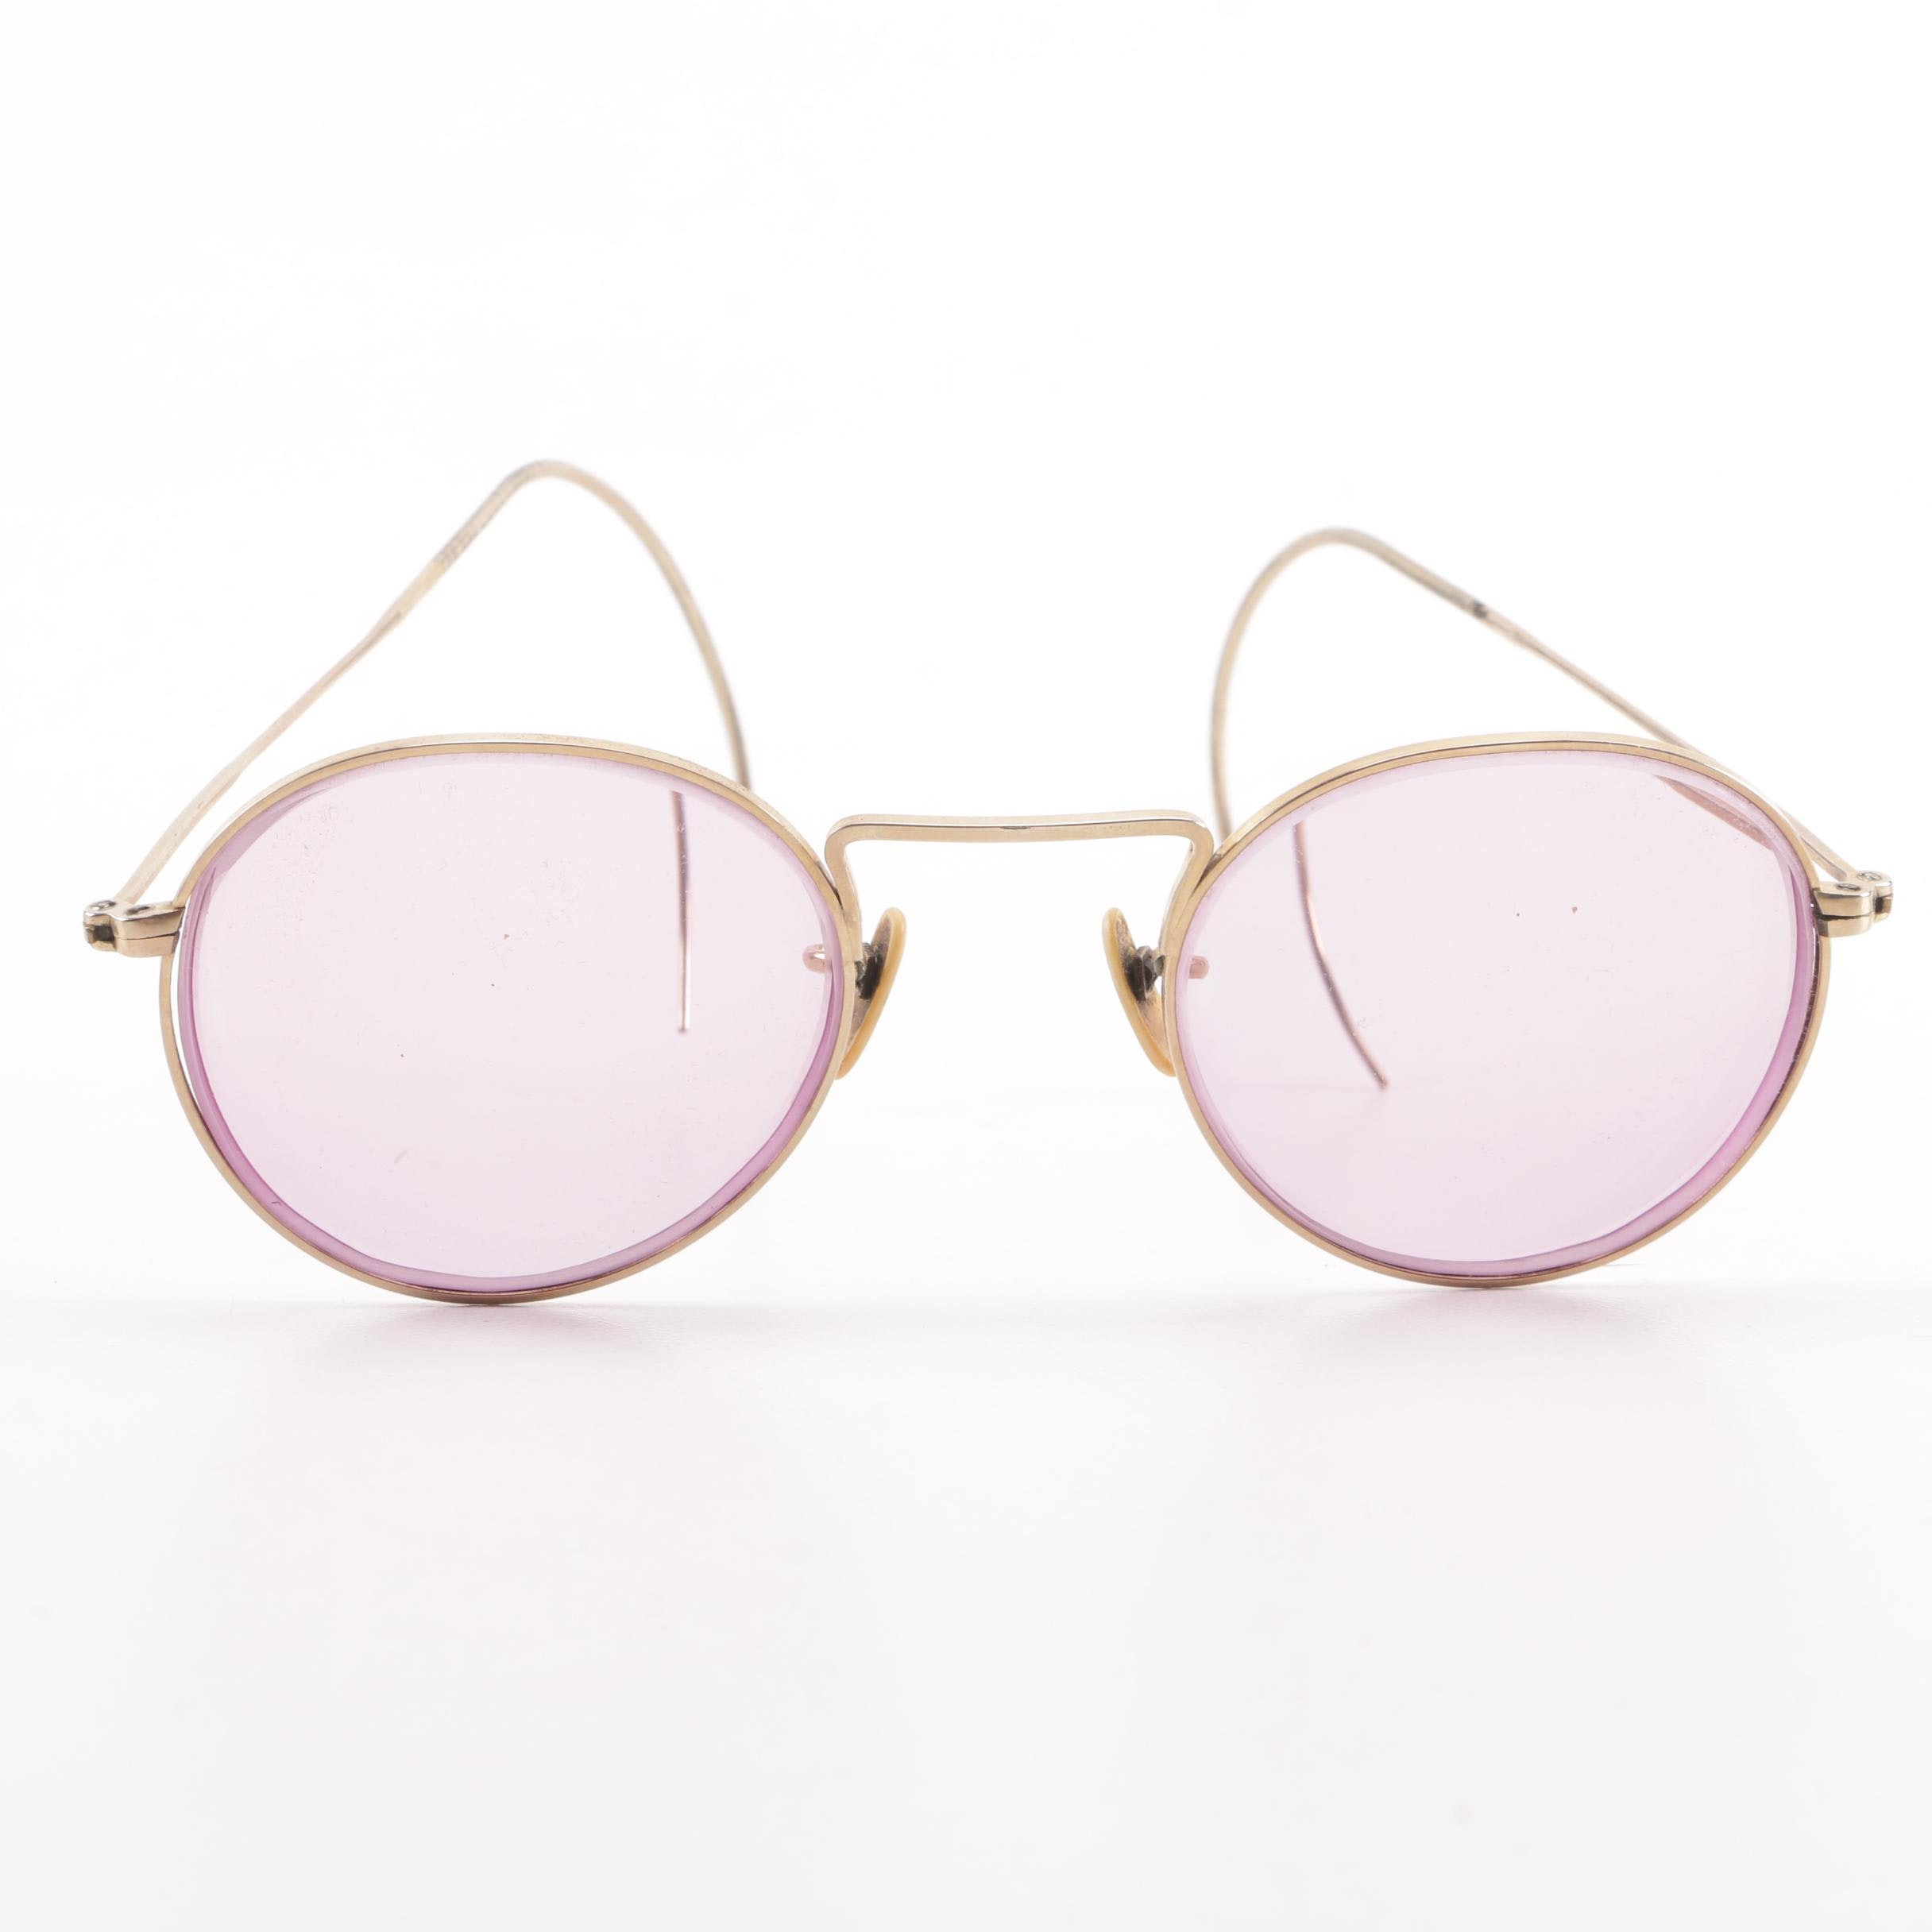 Vintage Shuron Gold Filled Round Glasses with Purple Tinted Lenses